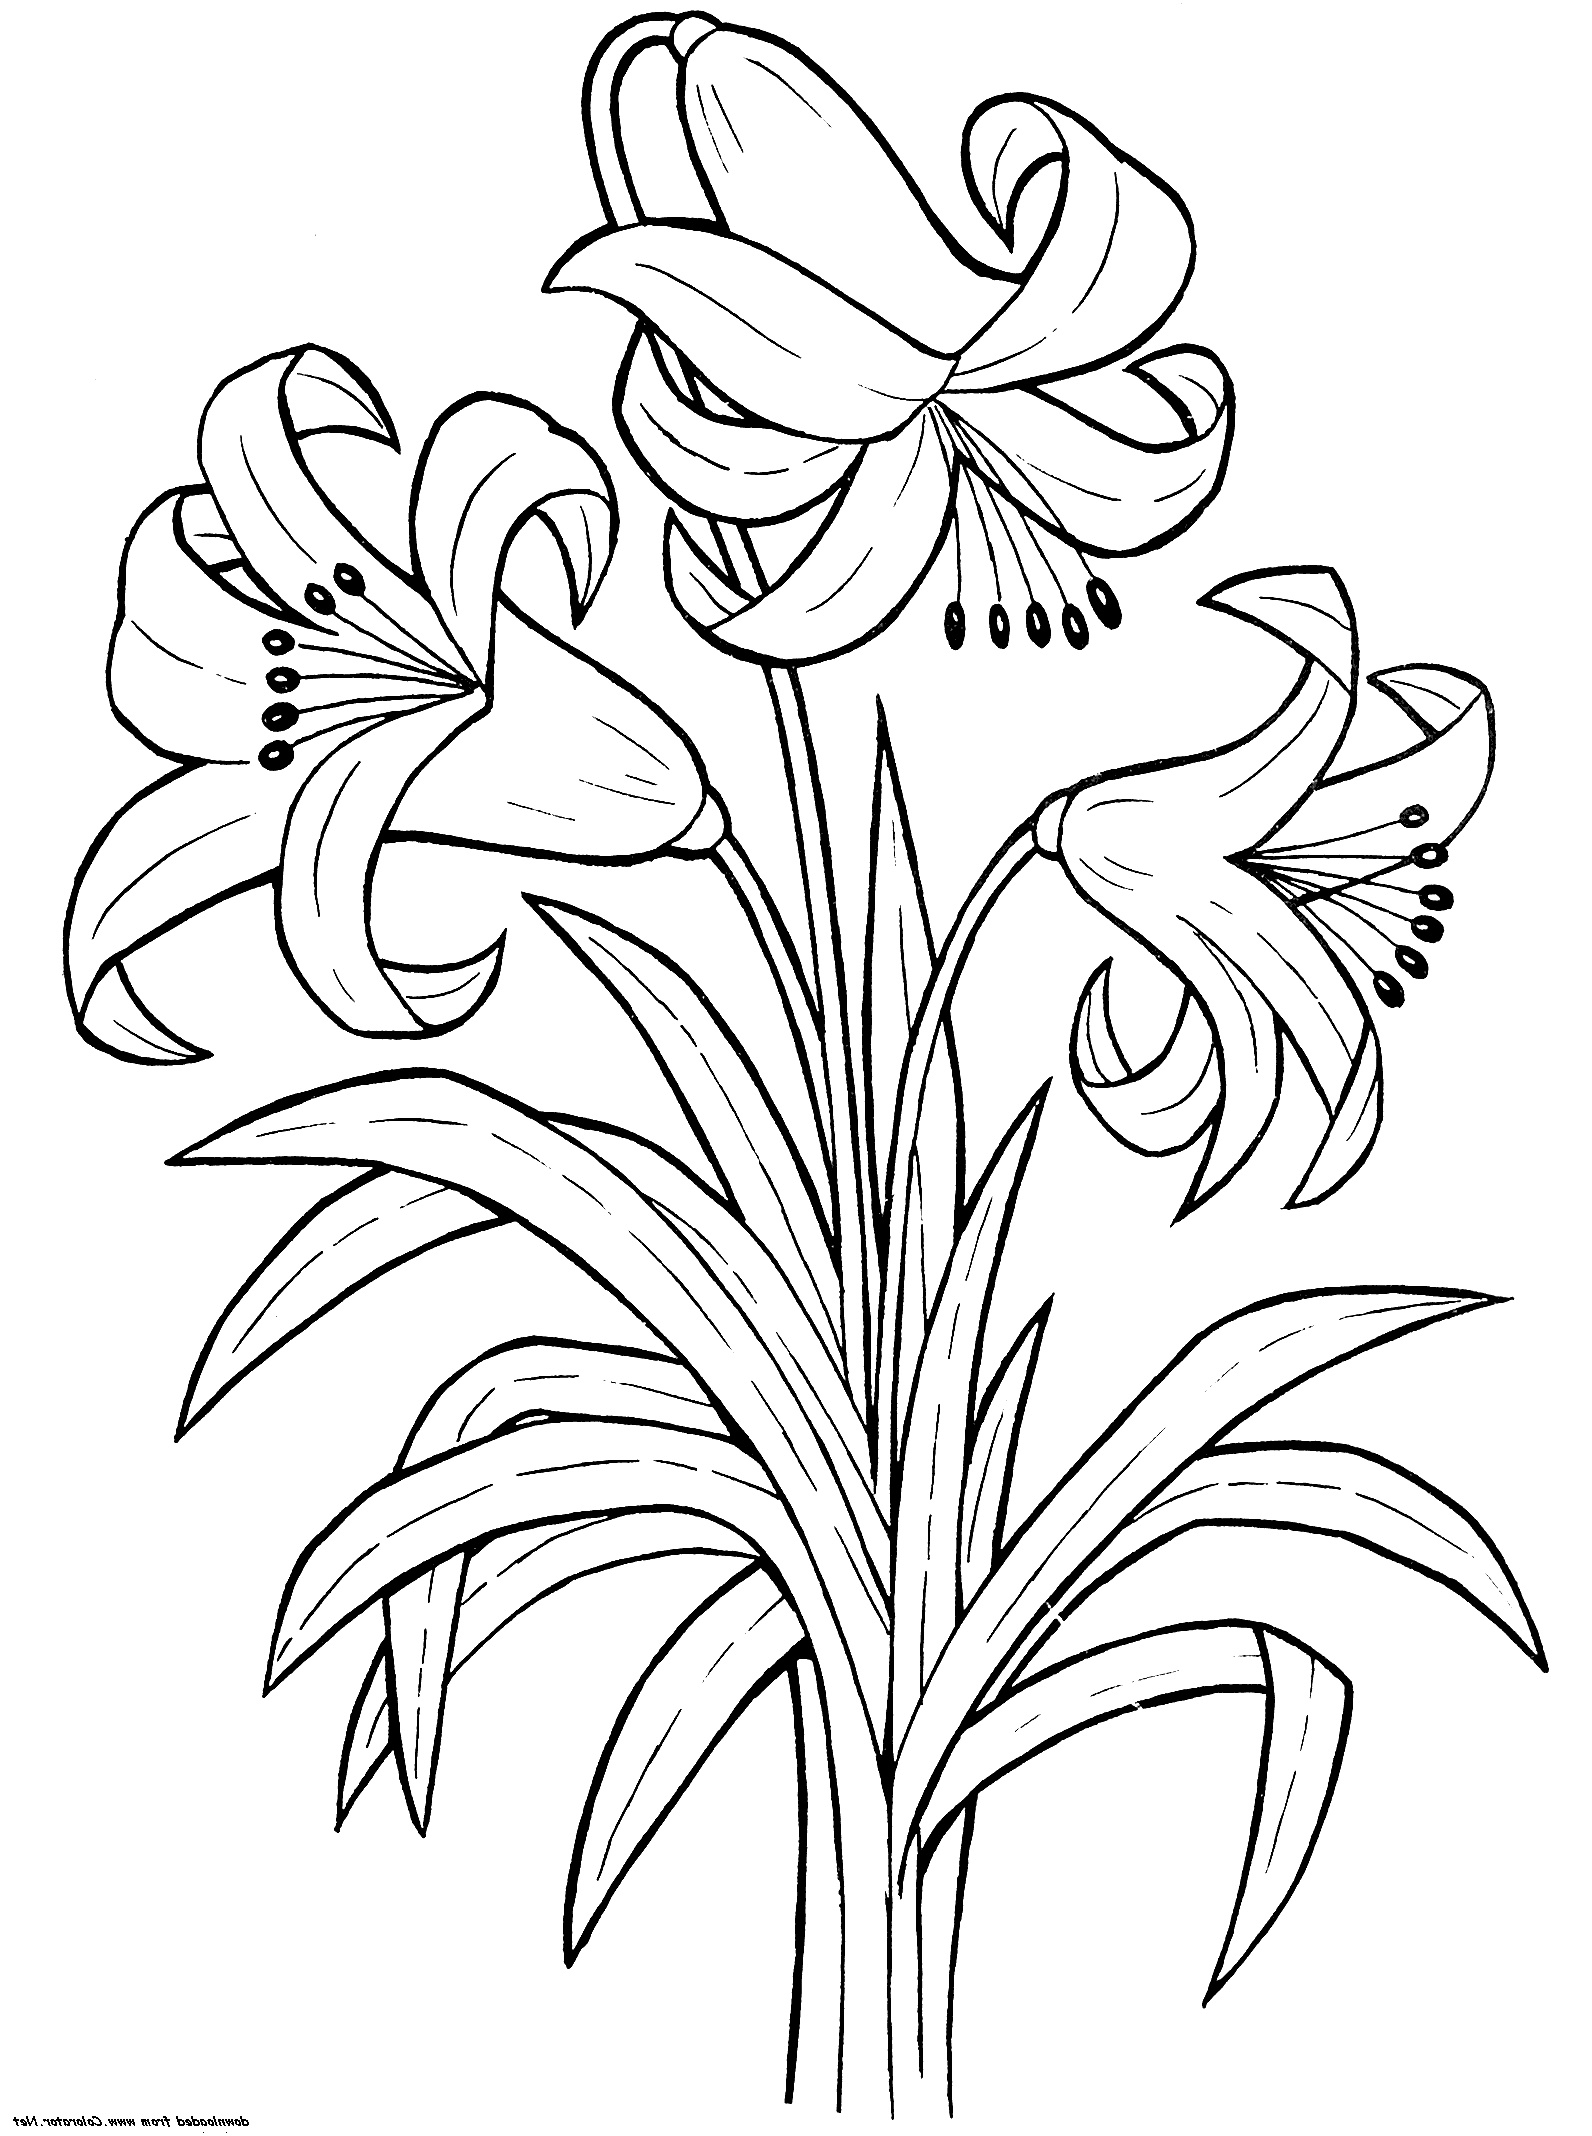 Flower-Coloring-Pages-Lily